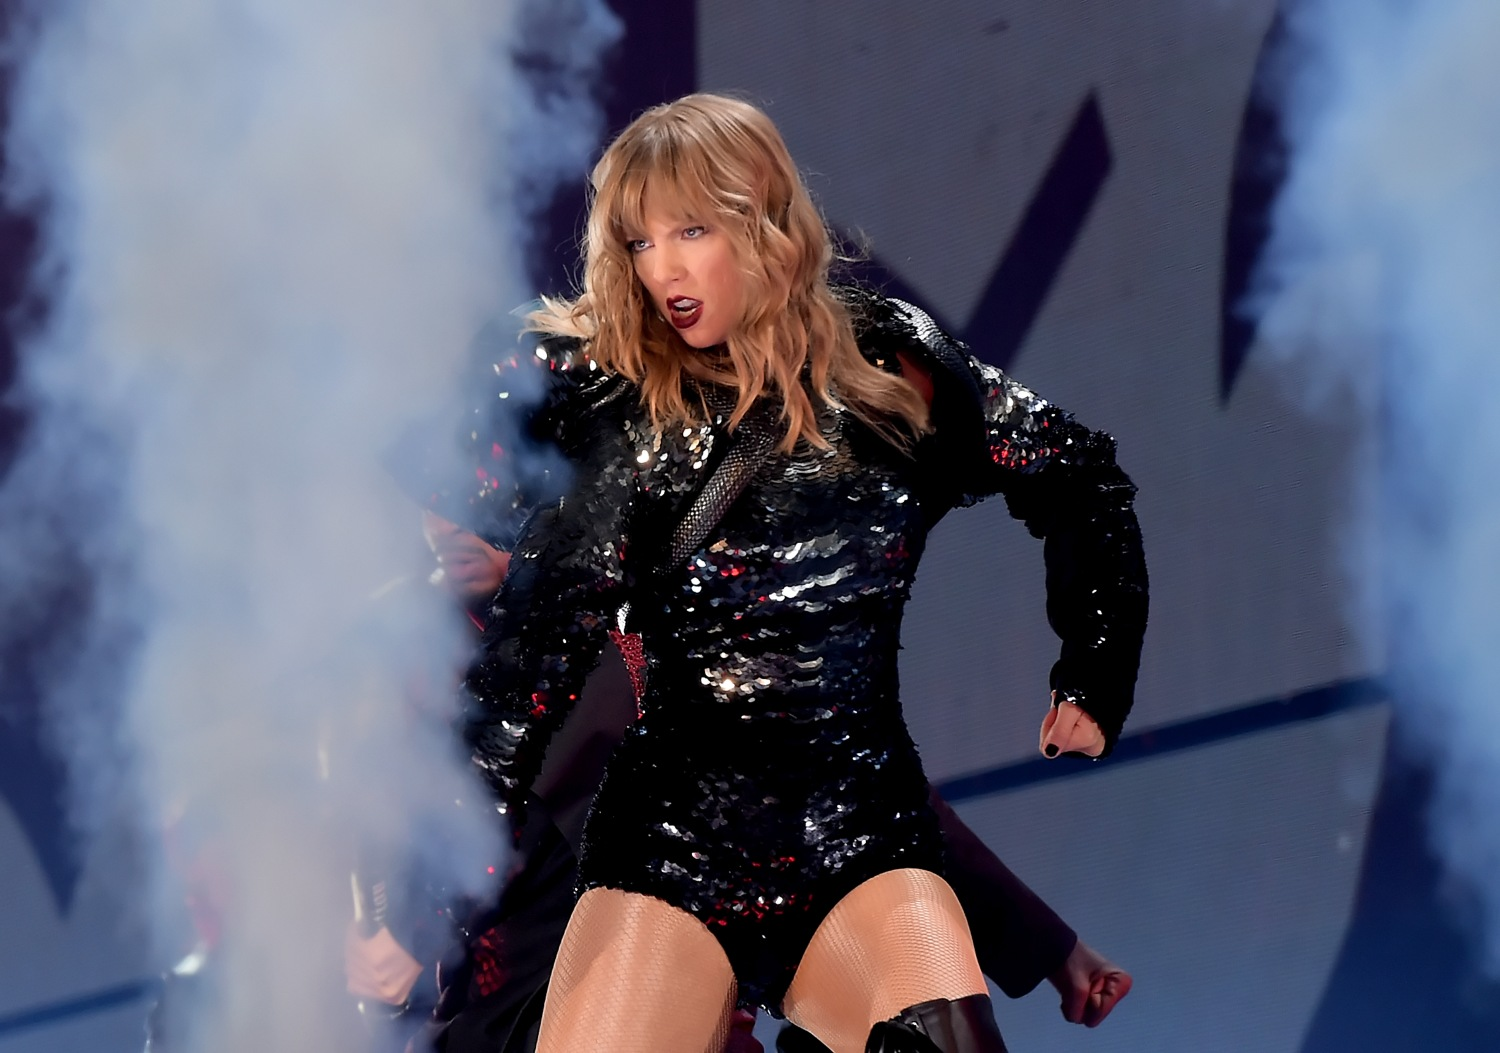 Taylor Swift Among Top 5 Shows In Philly This Summer Stubhub Says Cbs Philly